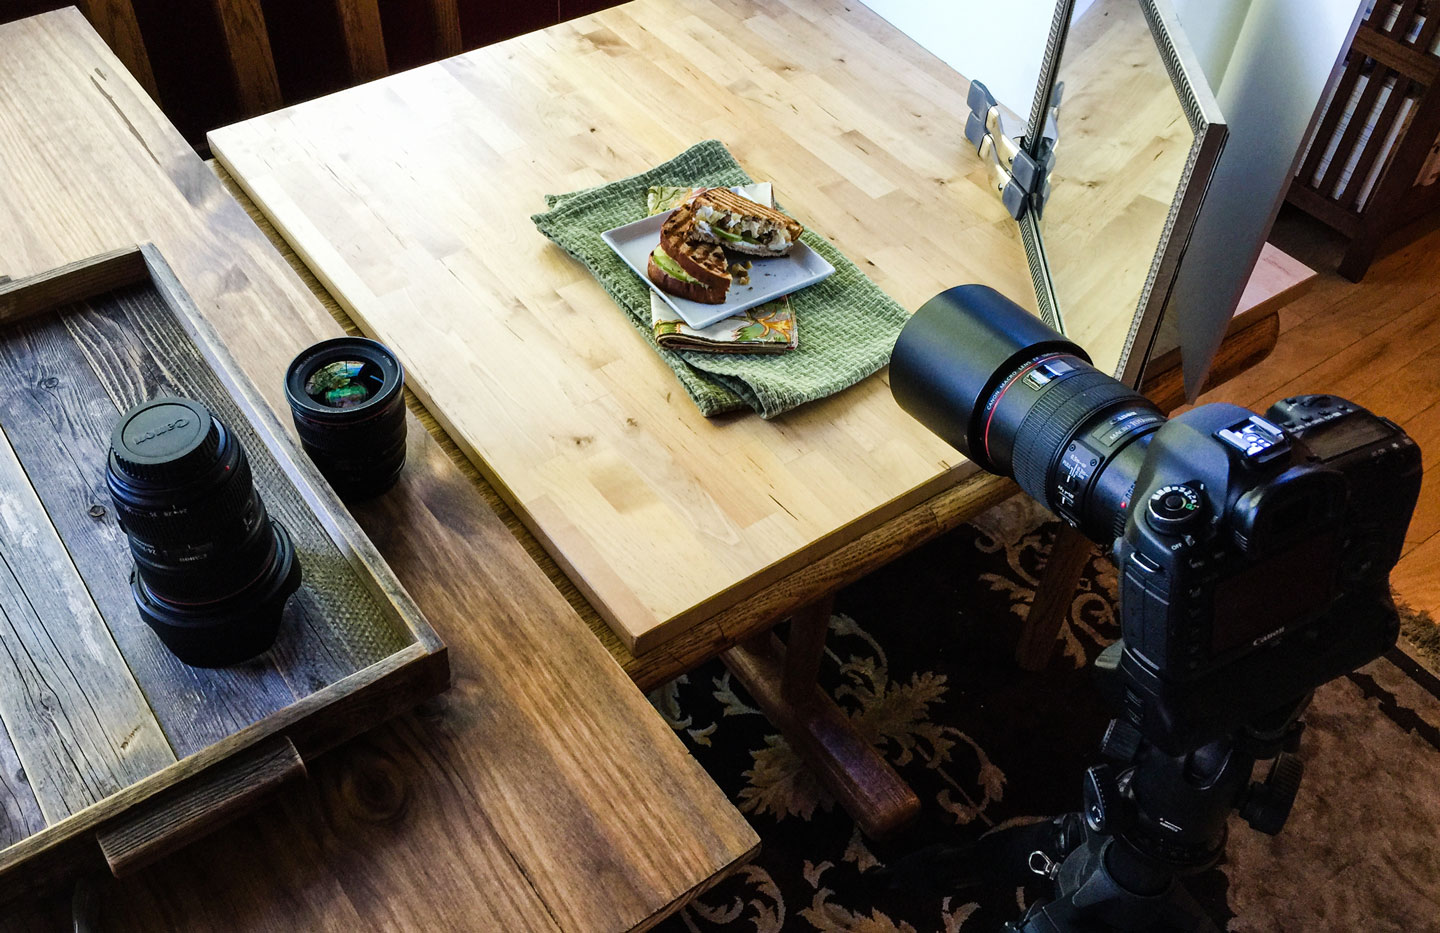 Behind the scenes of a food photography shoot